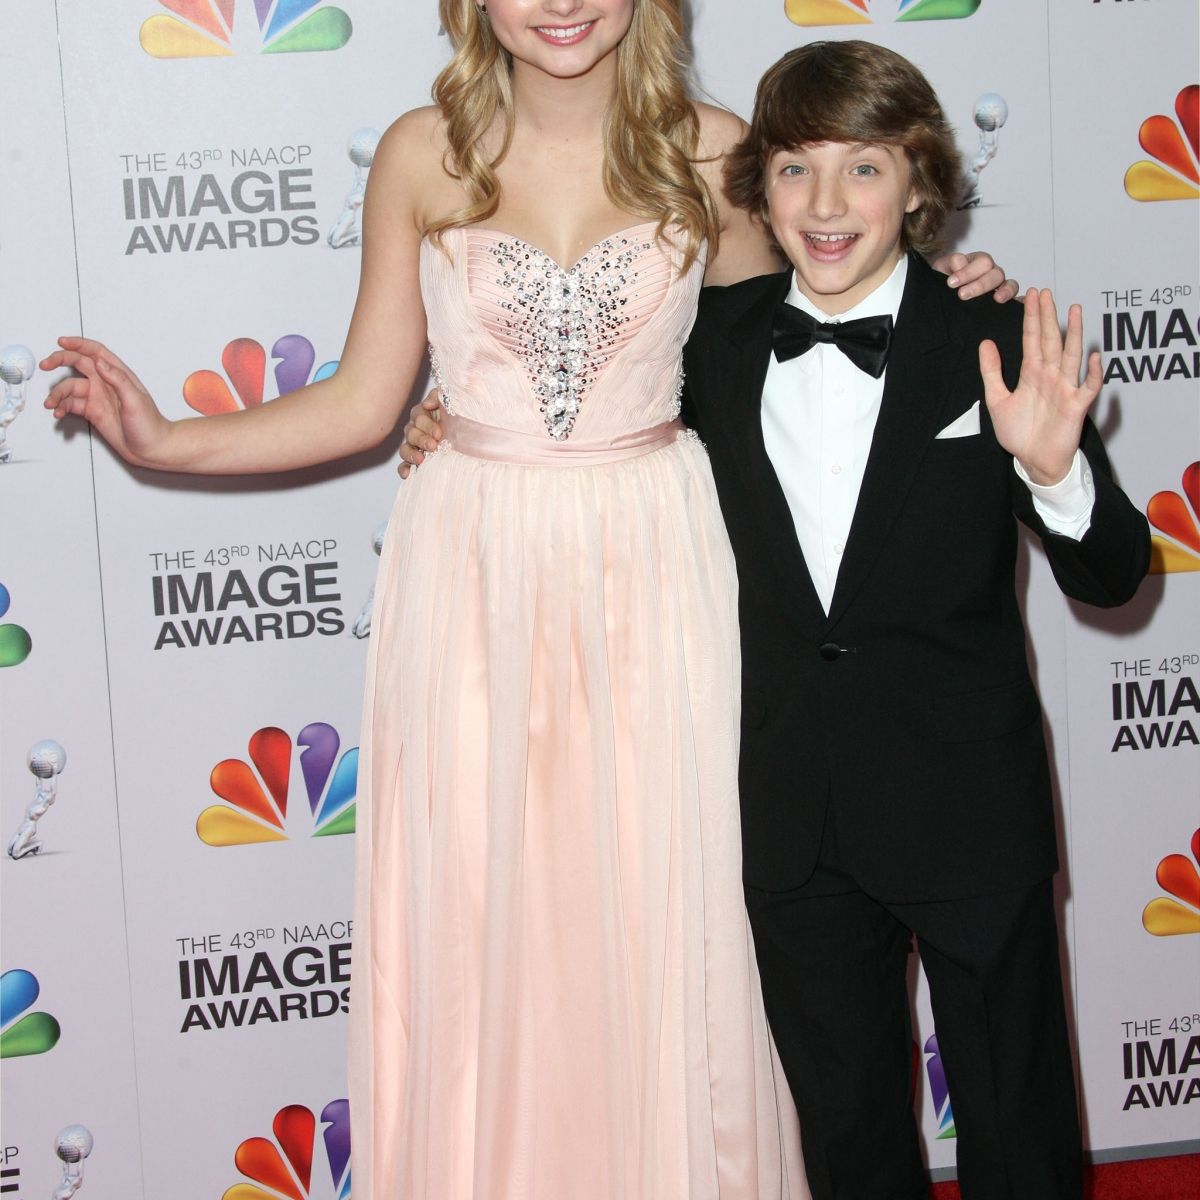 10 TV Co-Stars With Major Height Differences - J-14